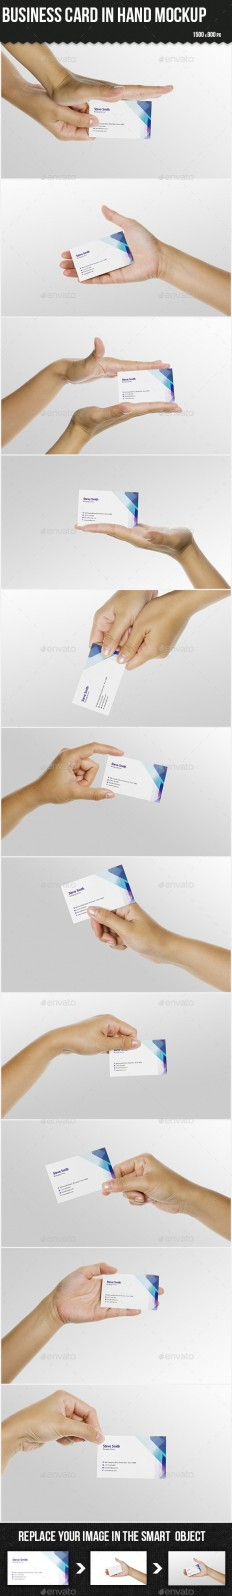 Business Card in Hand Mock-up | GraphicRiver